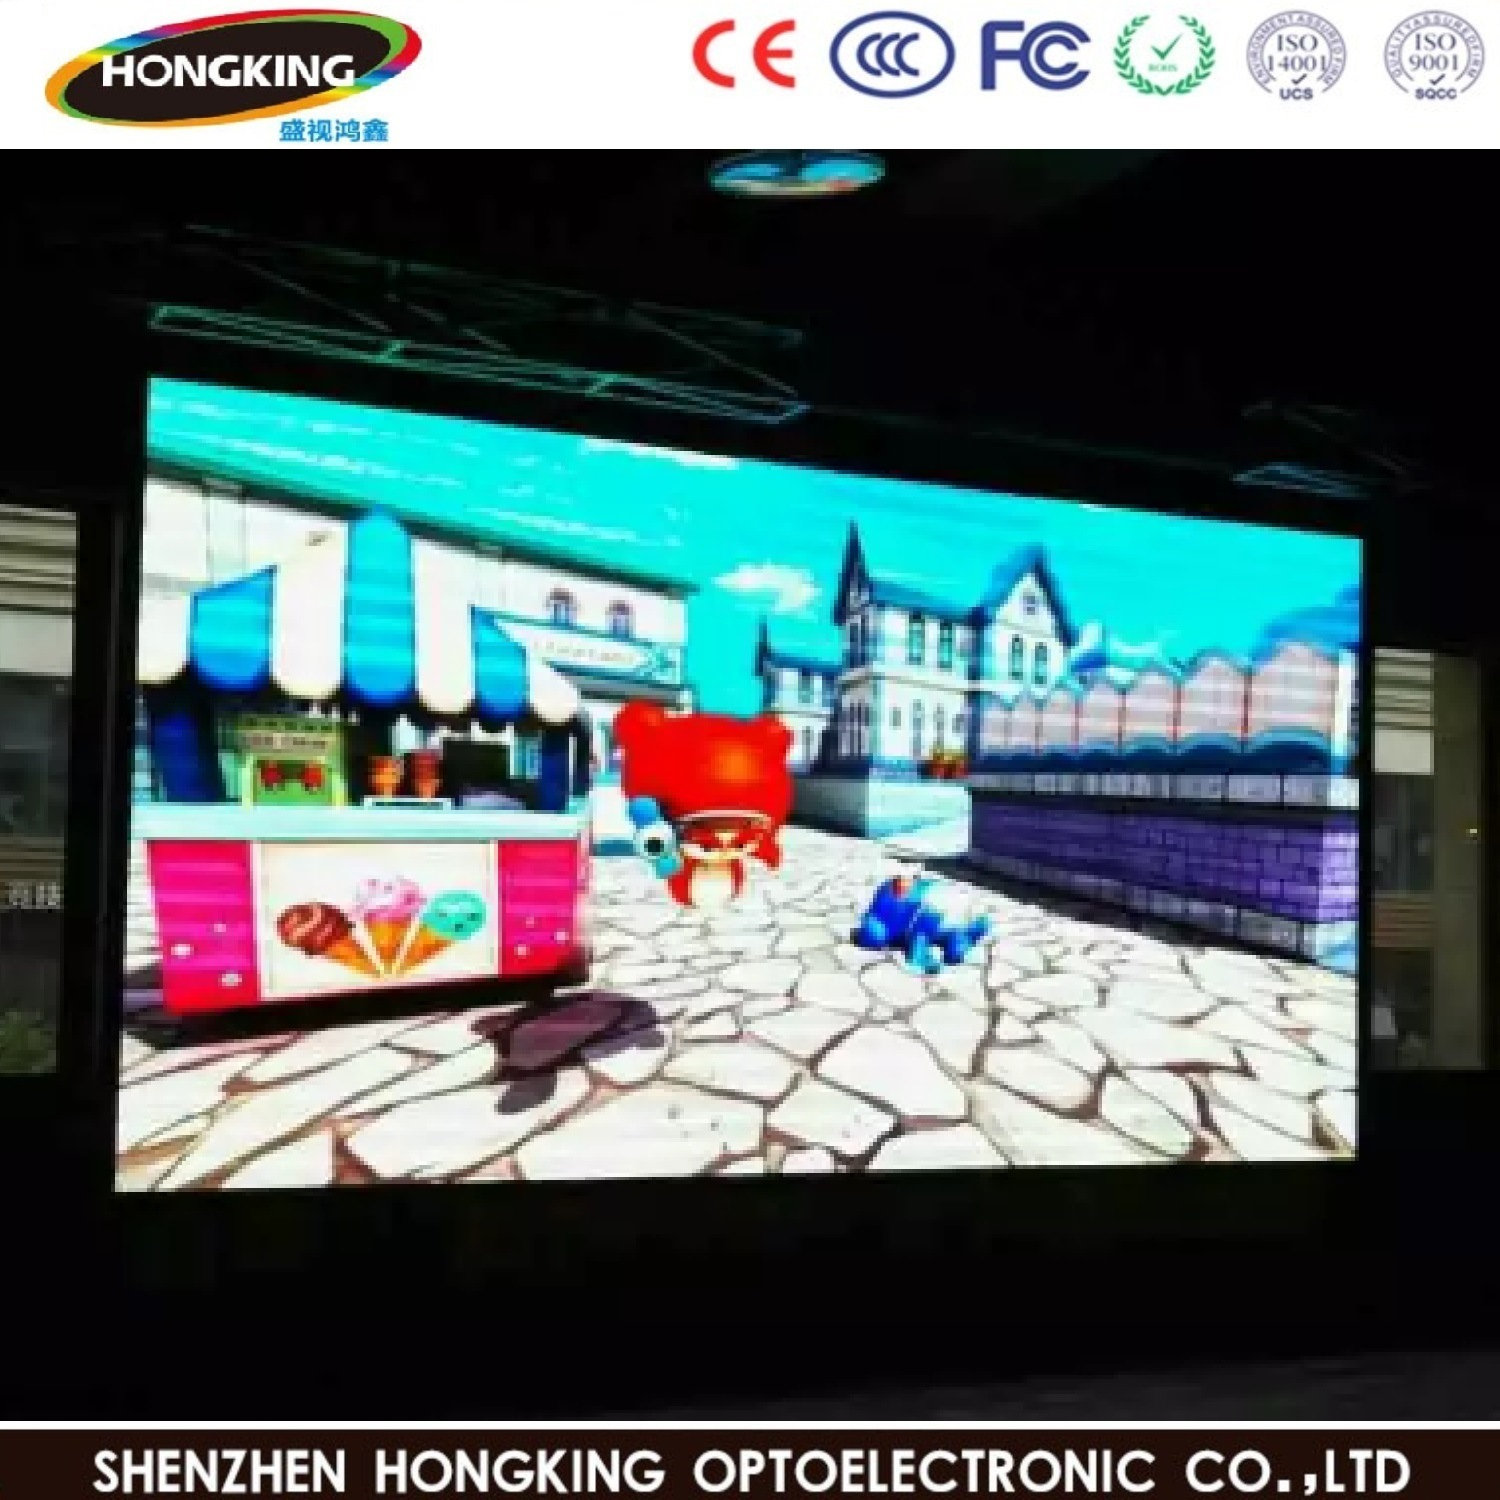 [Hot Item] High Definition Factory Price P2 5 Indoor LED Panel Big  Advertising LED Display Screen